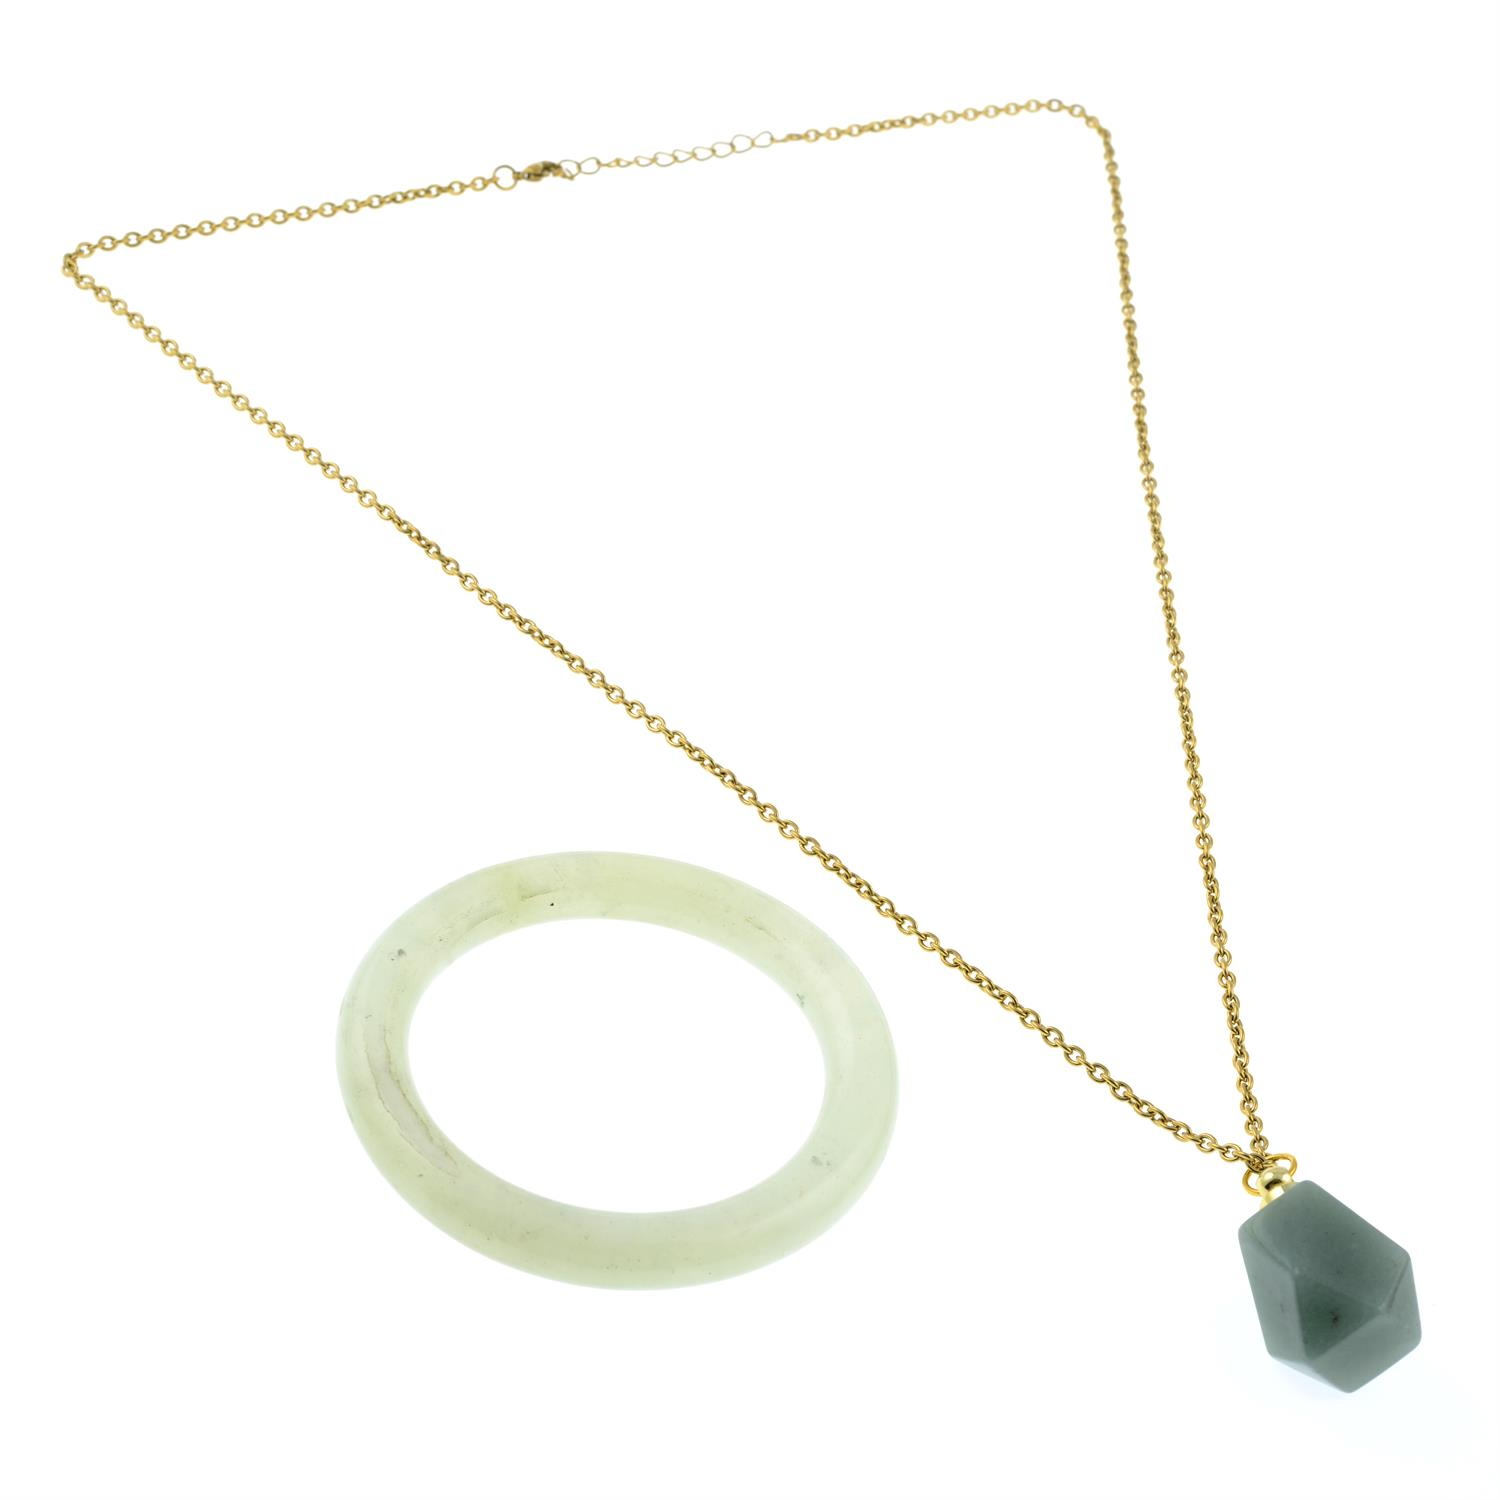 A hardstone bangle and an aventurine snuff bottle pendant. - Image 2 of 2